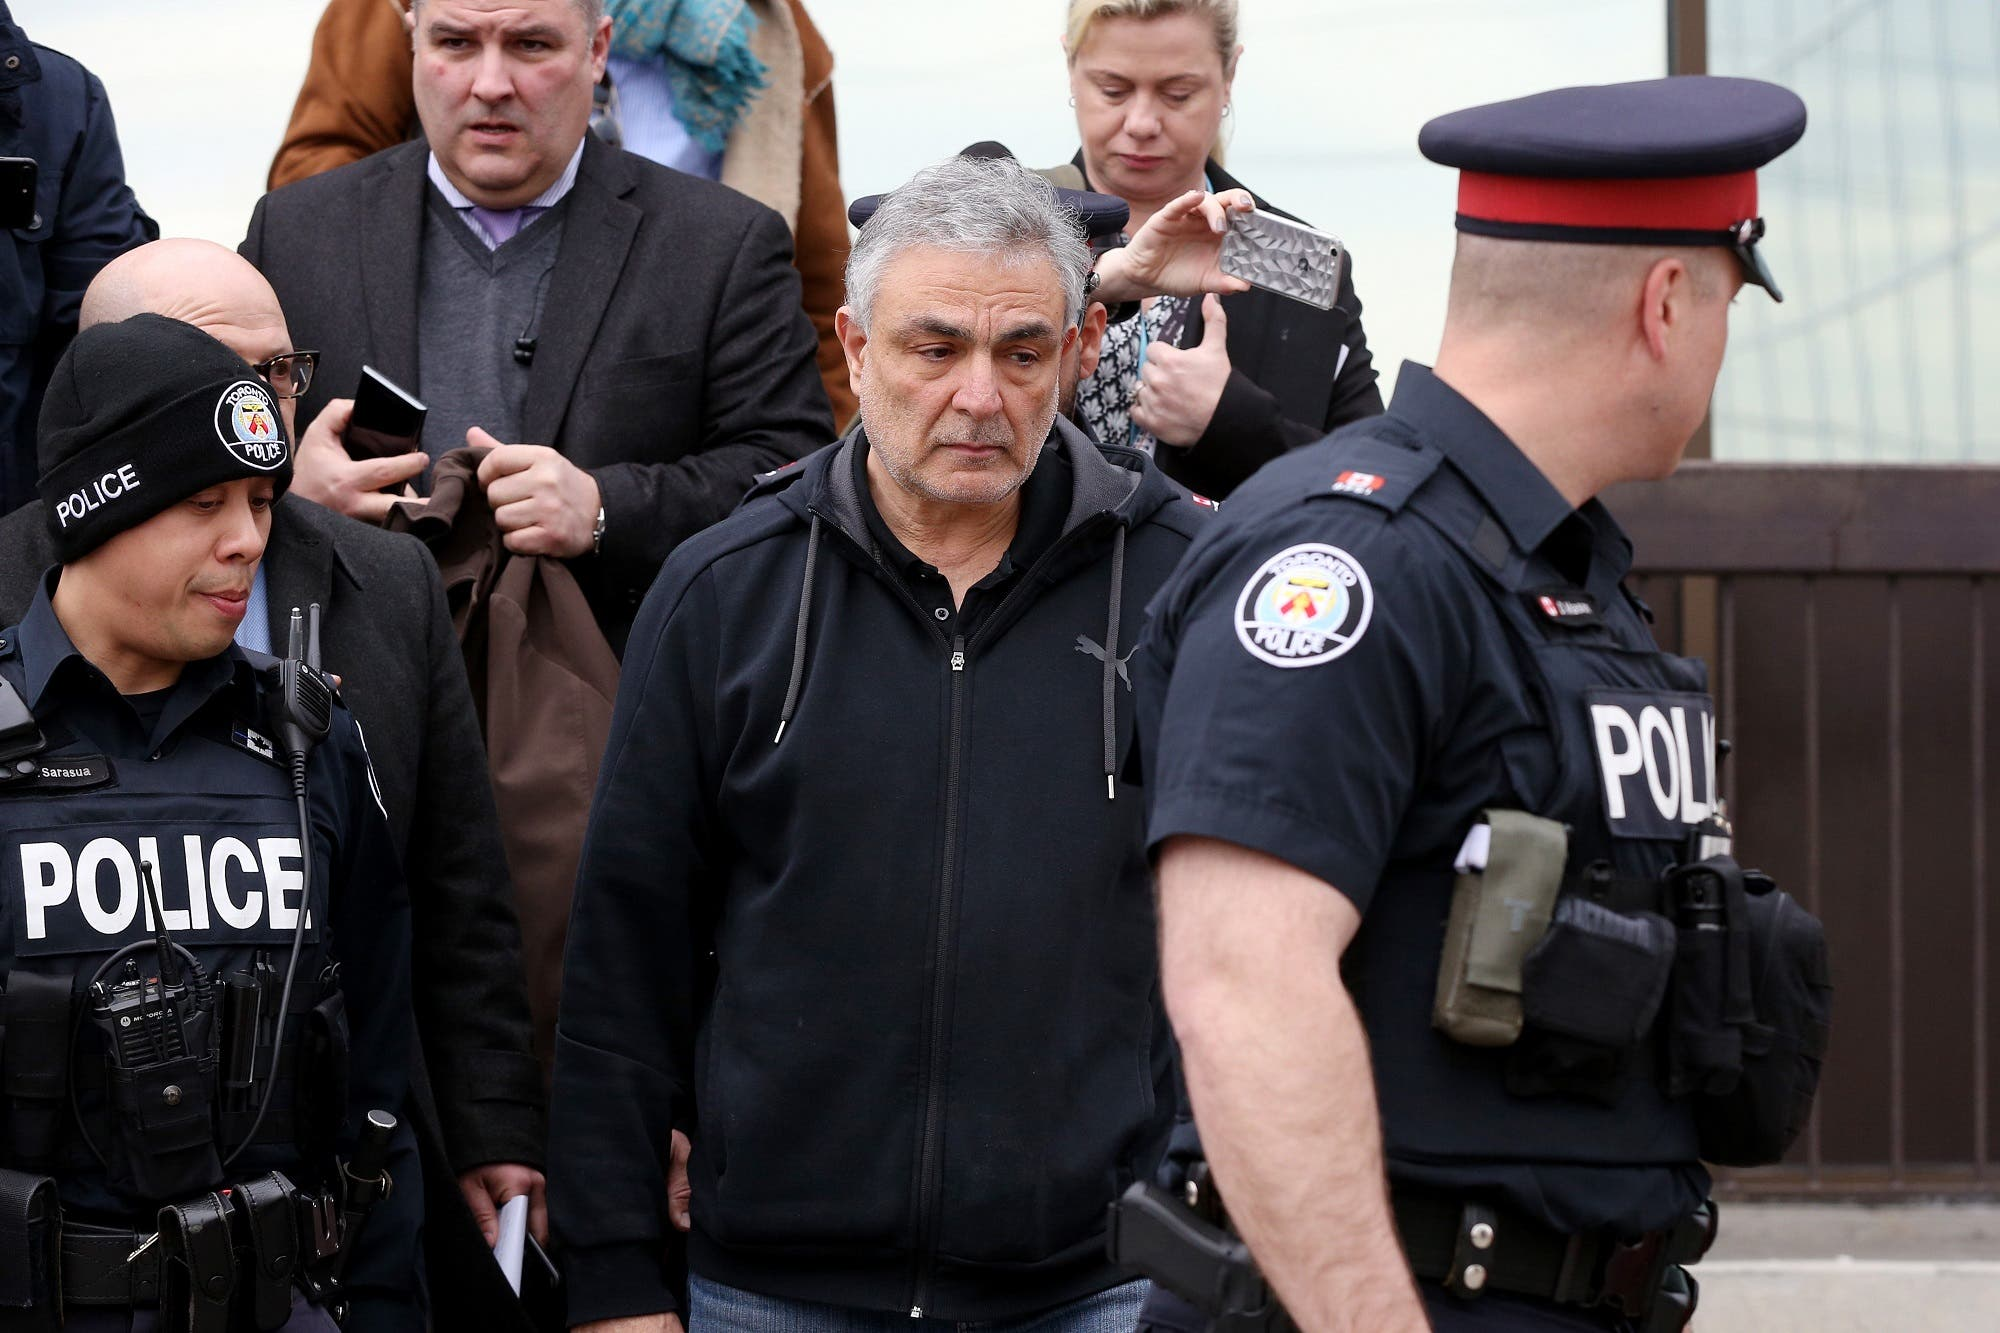 Vic Minassian, the father of suspect Alek Minassian leaves court after his son Alek's court appearance in Toronto, Ontario, on April 24, 2018. (AFP)